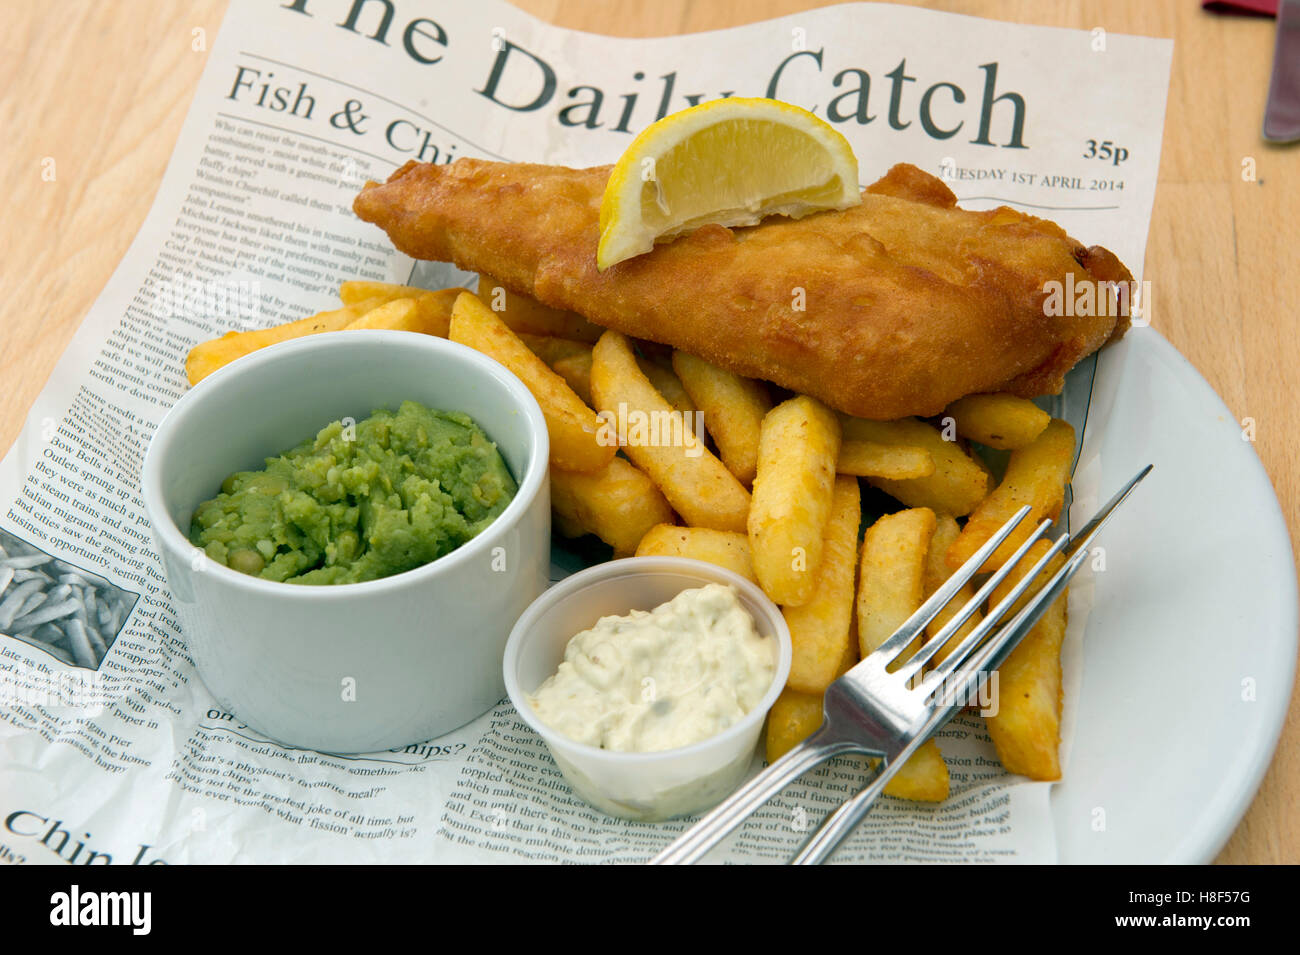 Traditional British fish & chips, served in a newspaper. a UK Stock Photo: 125723236 - Alamy